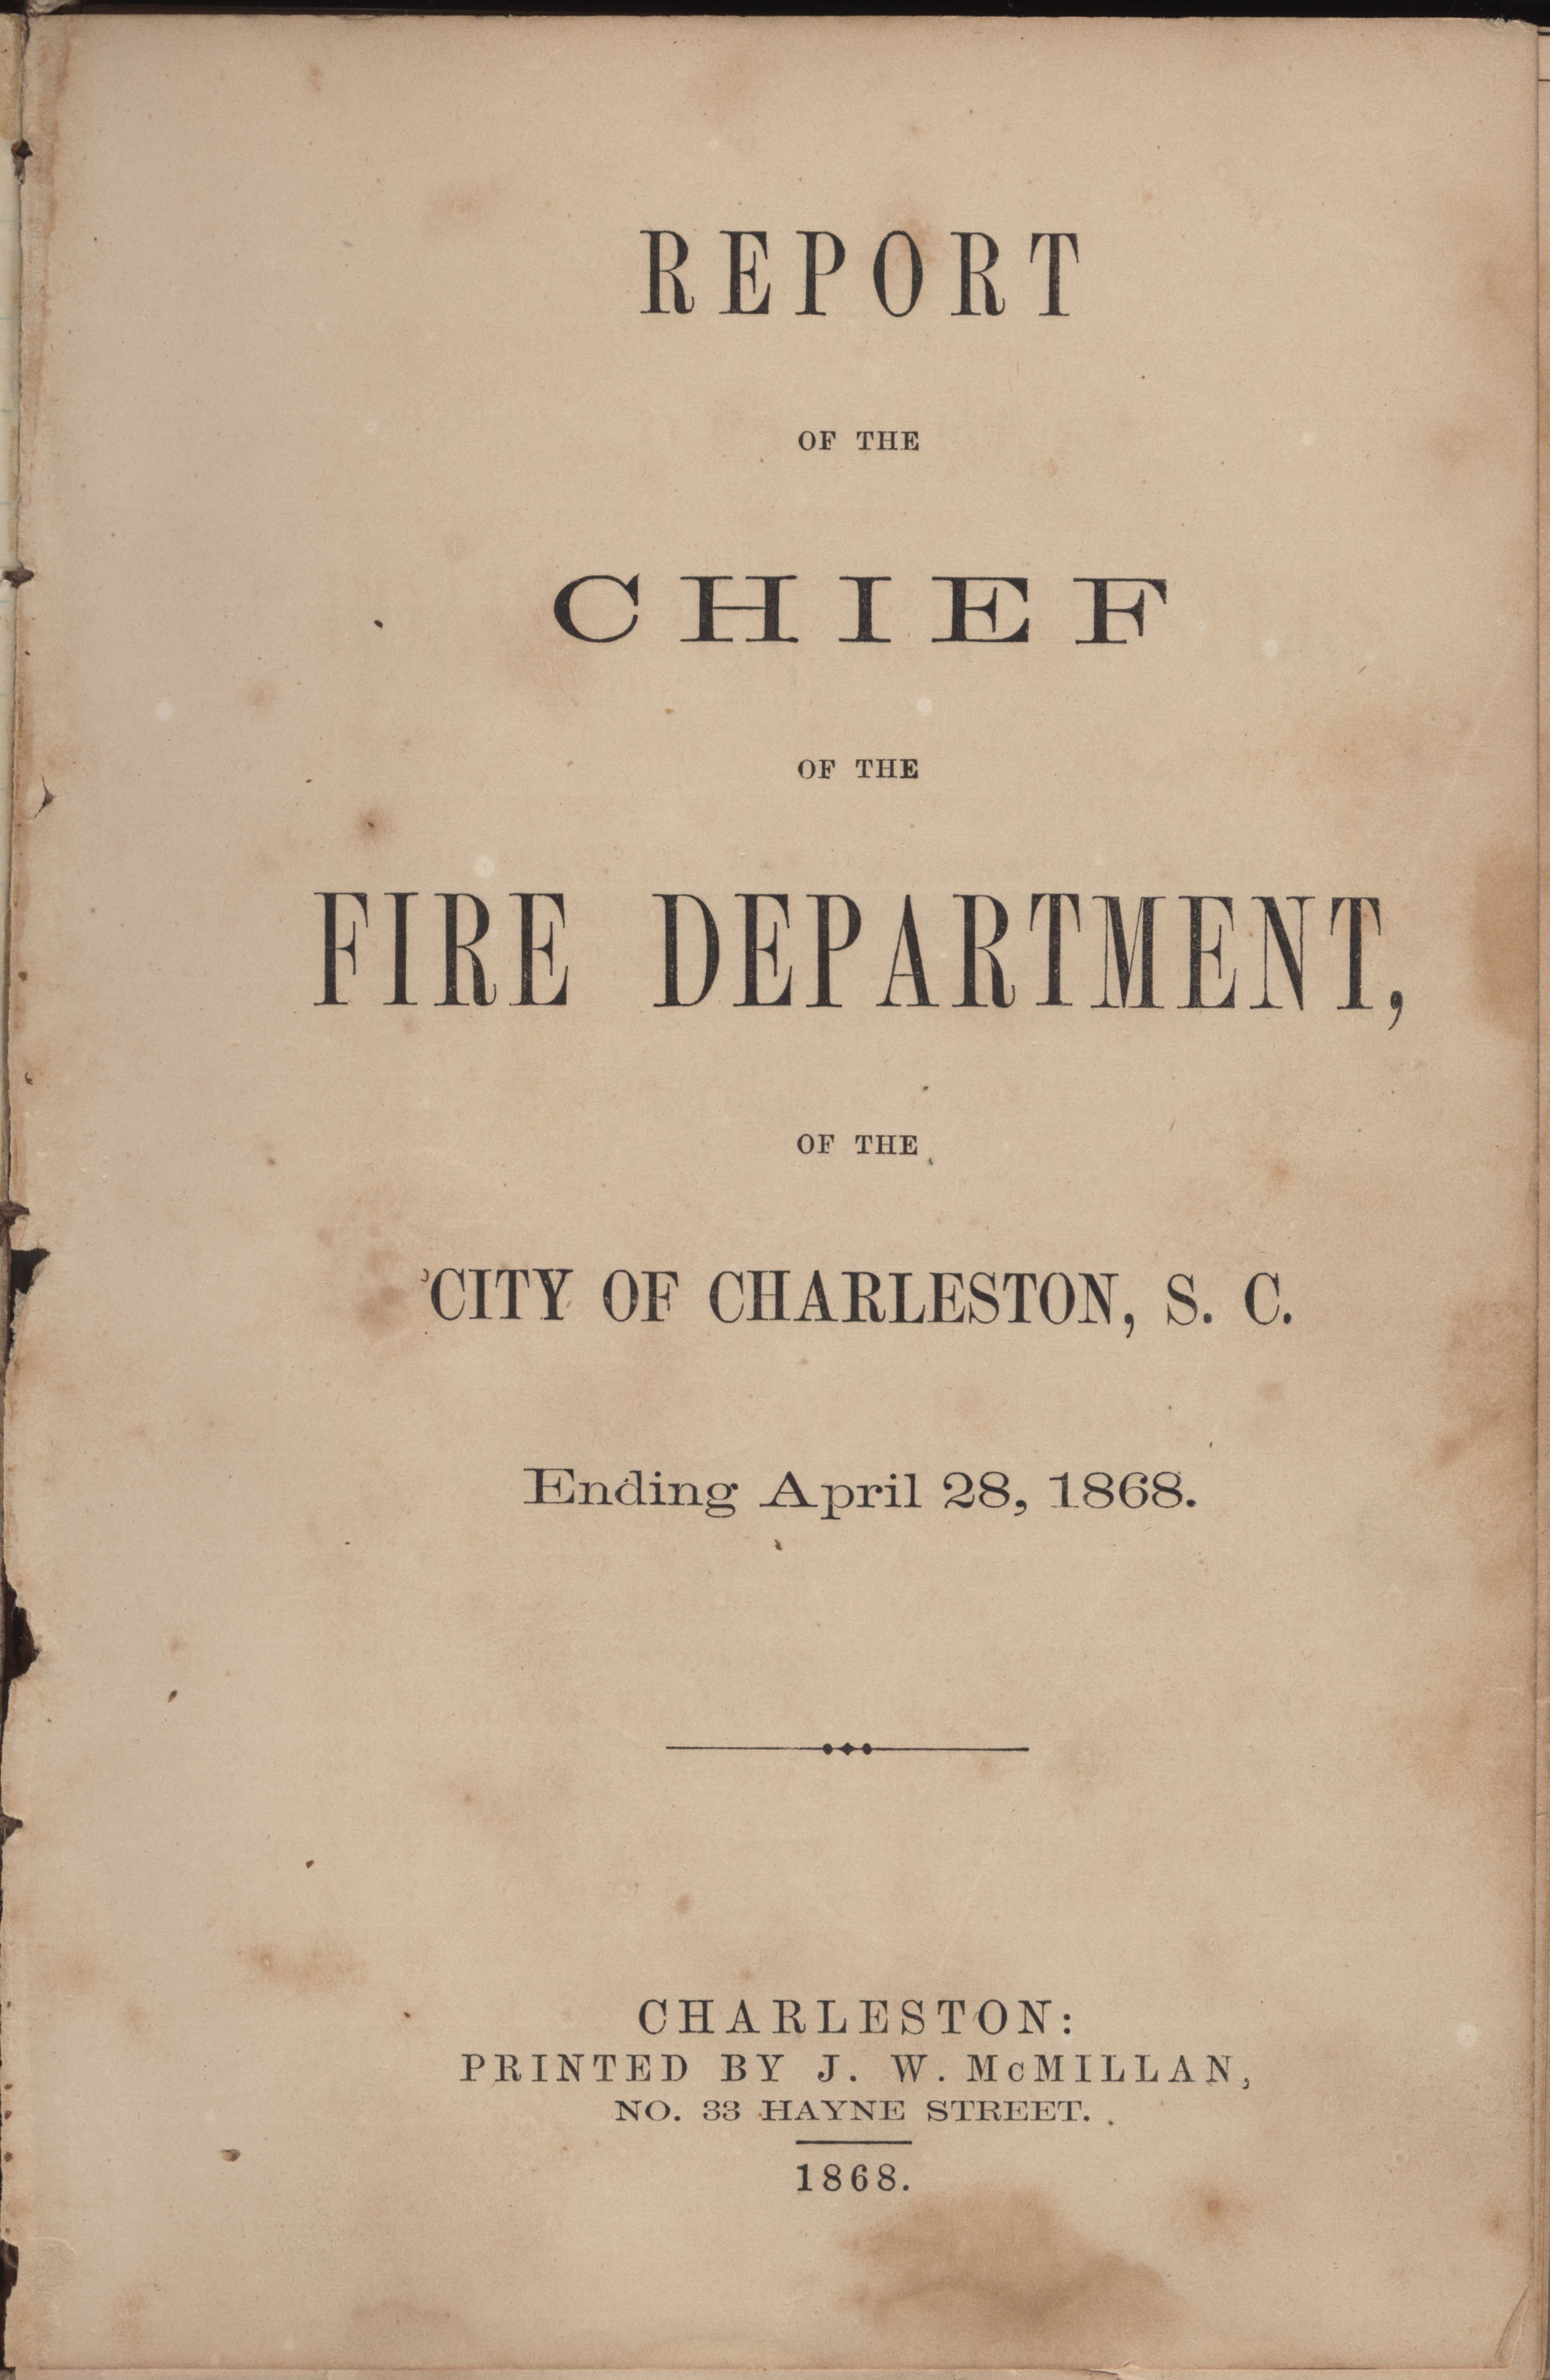 Annual Report of the Chief of the Fire Department of the City of Charleston, page 181